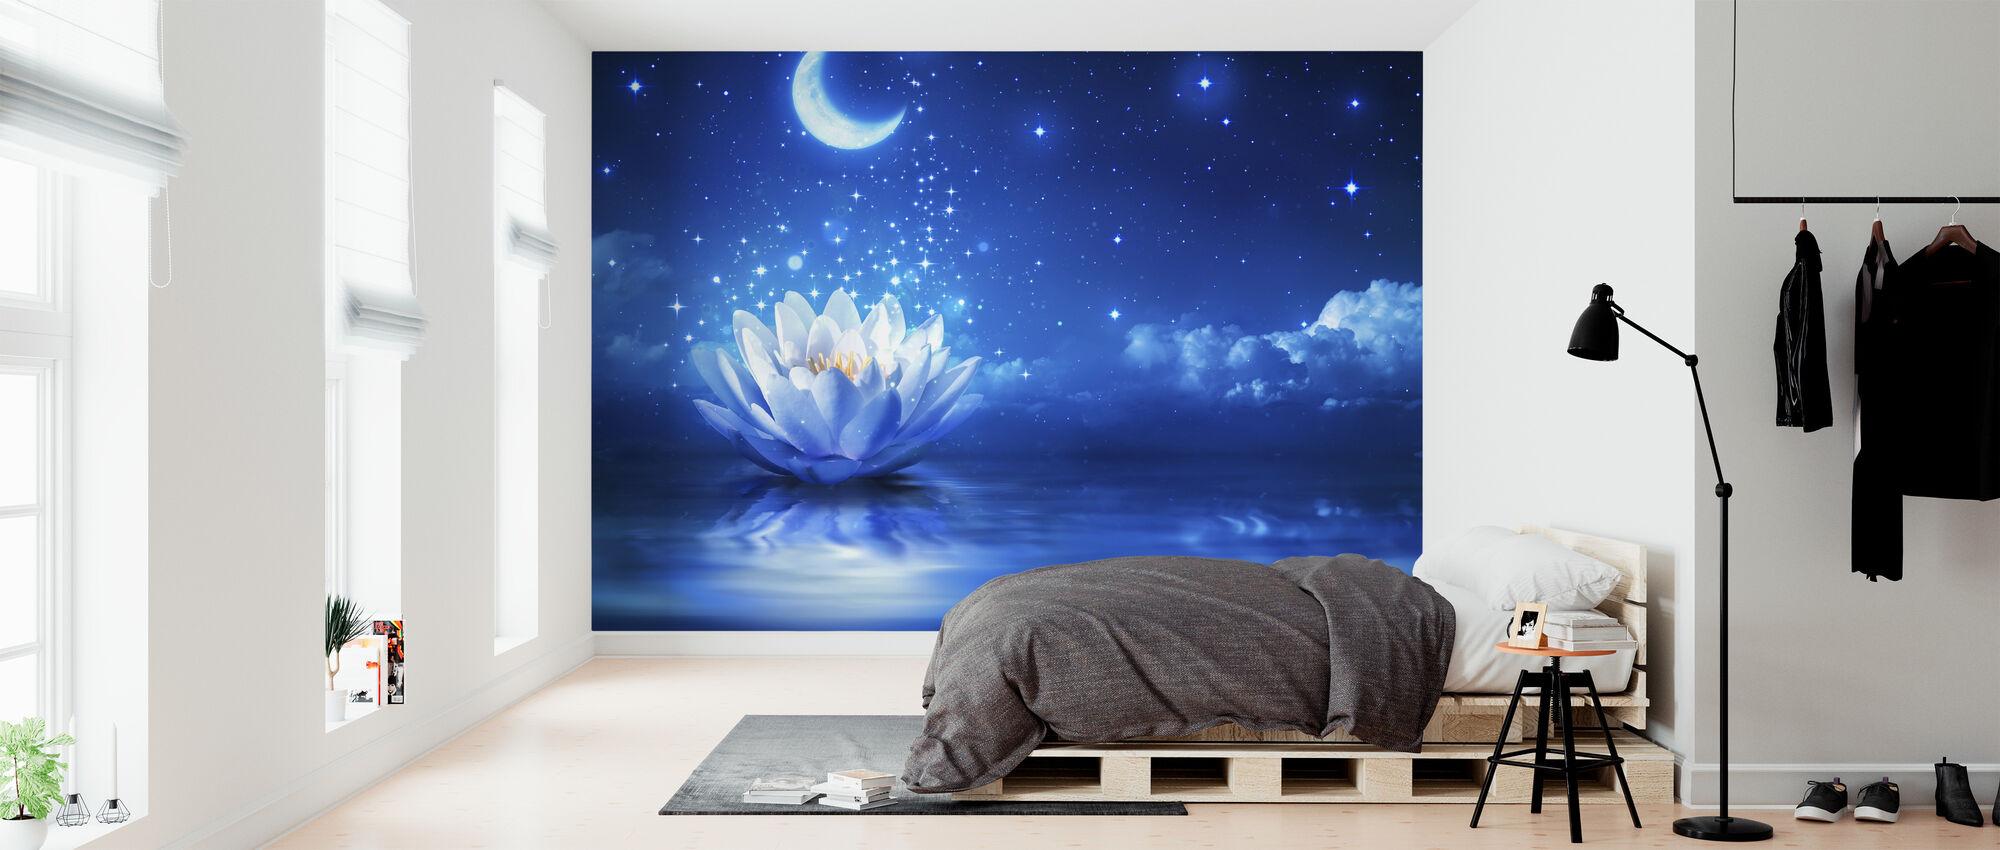 Waterlily Moon - Wallpaper - Bedroom